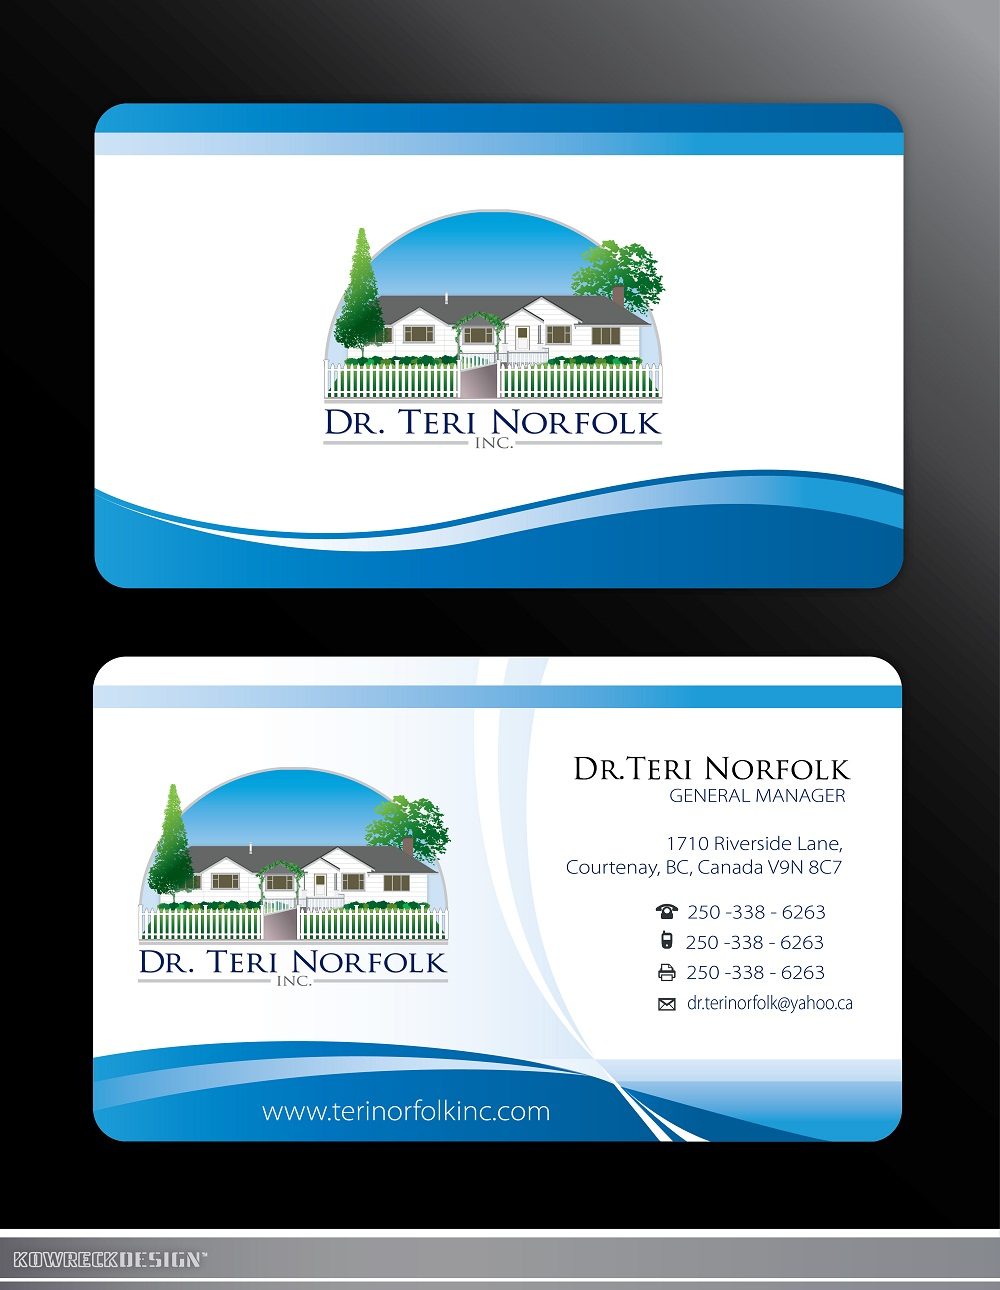 Unique business card design wanted for dr teri norfolk inc unique business card design wanted for dr teri norfolk inc hiretheworld reheart Gallery